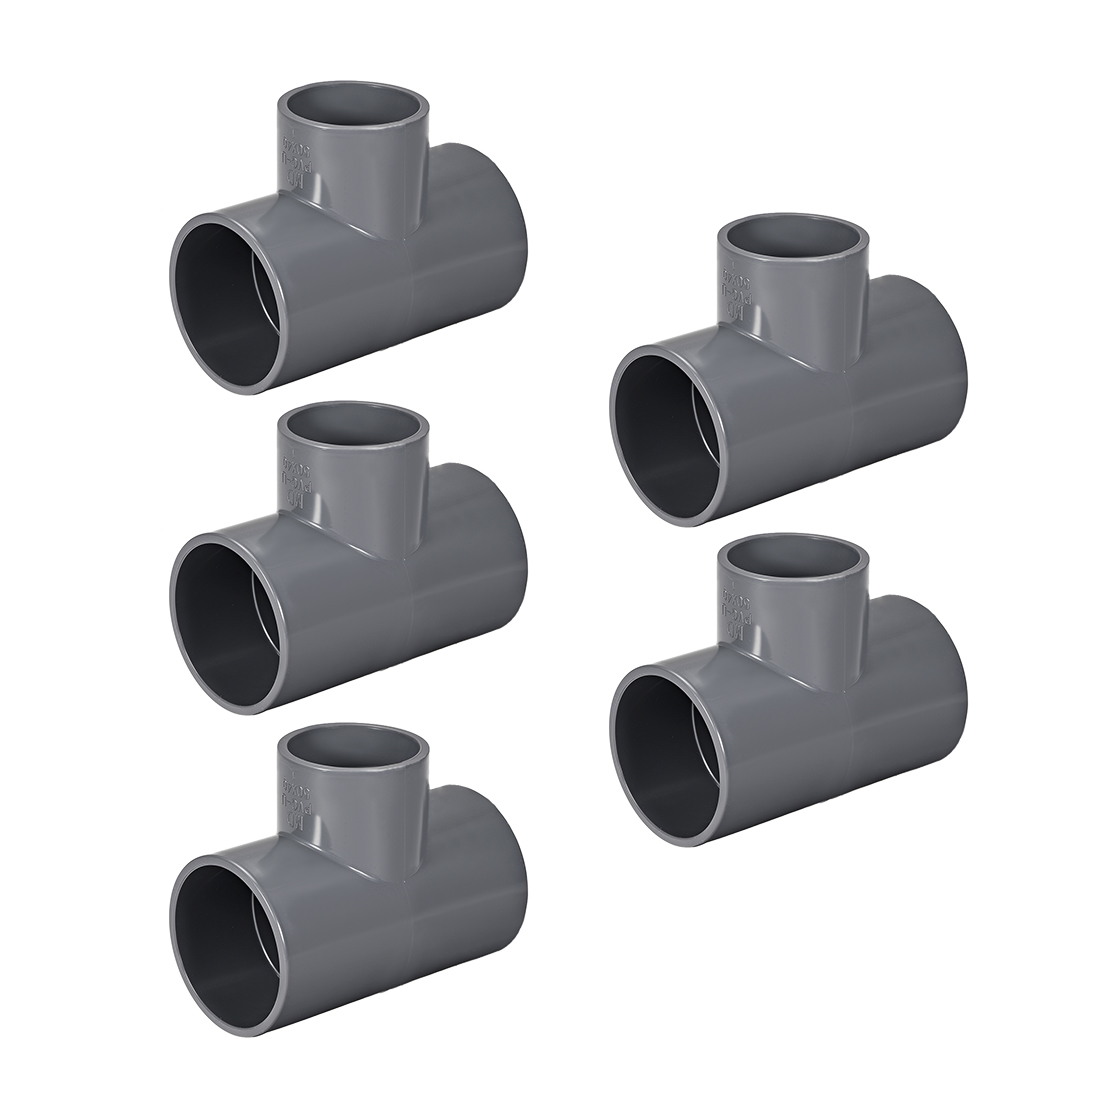 PVC Pipe Fitting Tee 401-Series Gray 1-1/2-inch X 2-inch Socket 5pcs